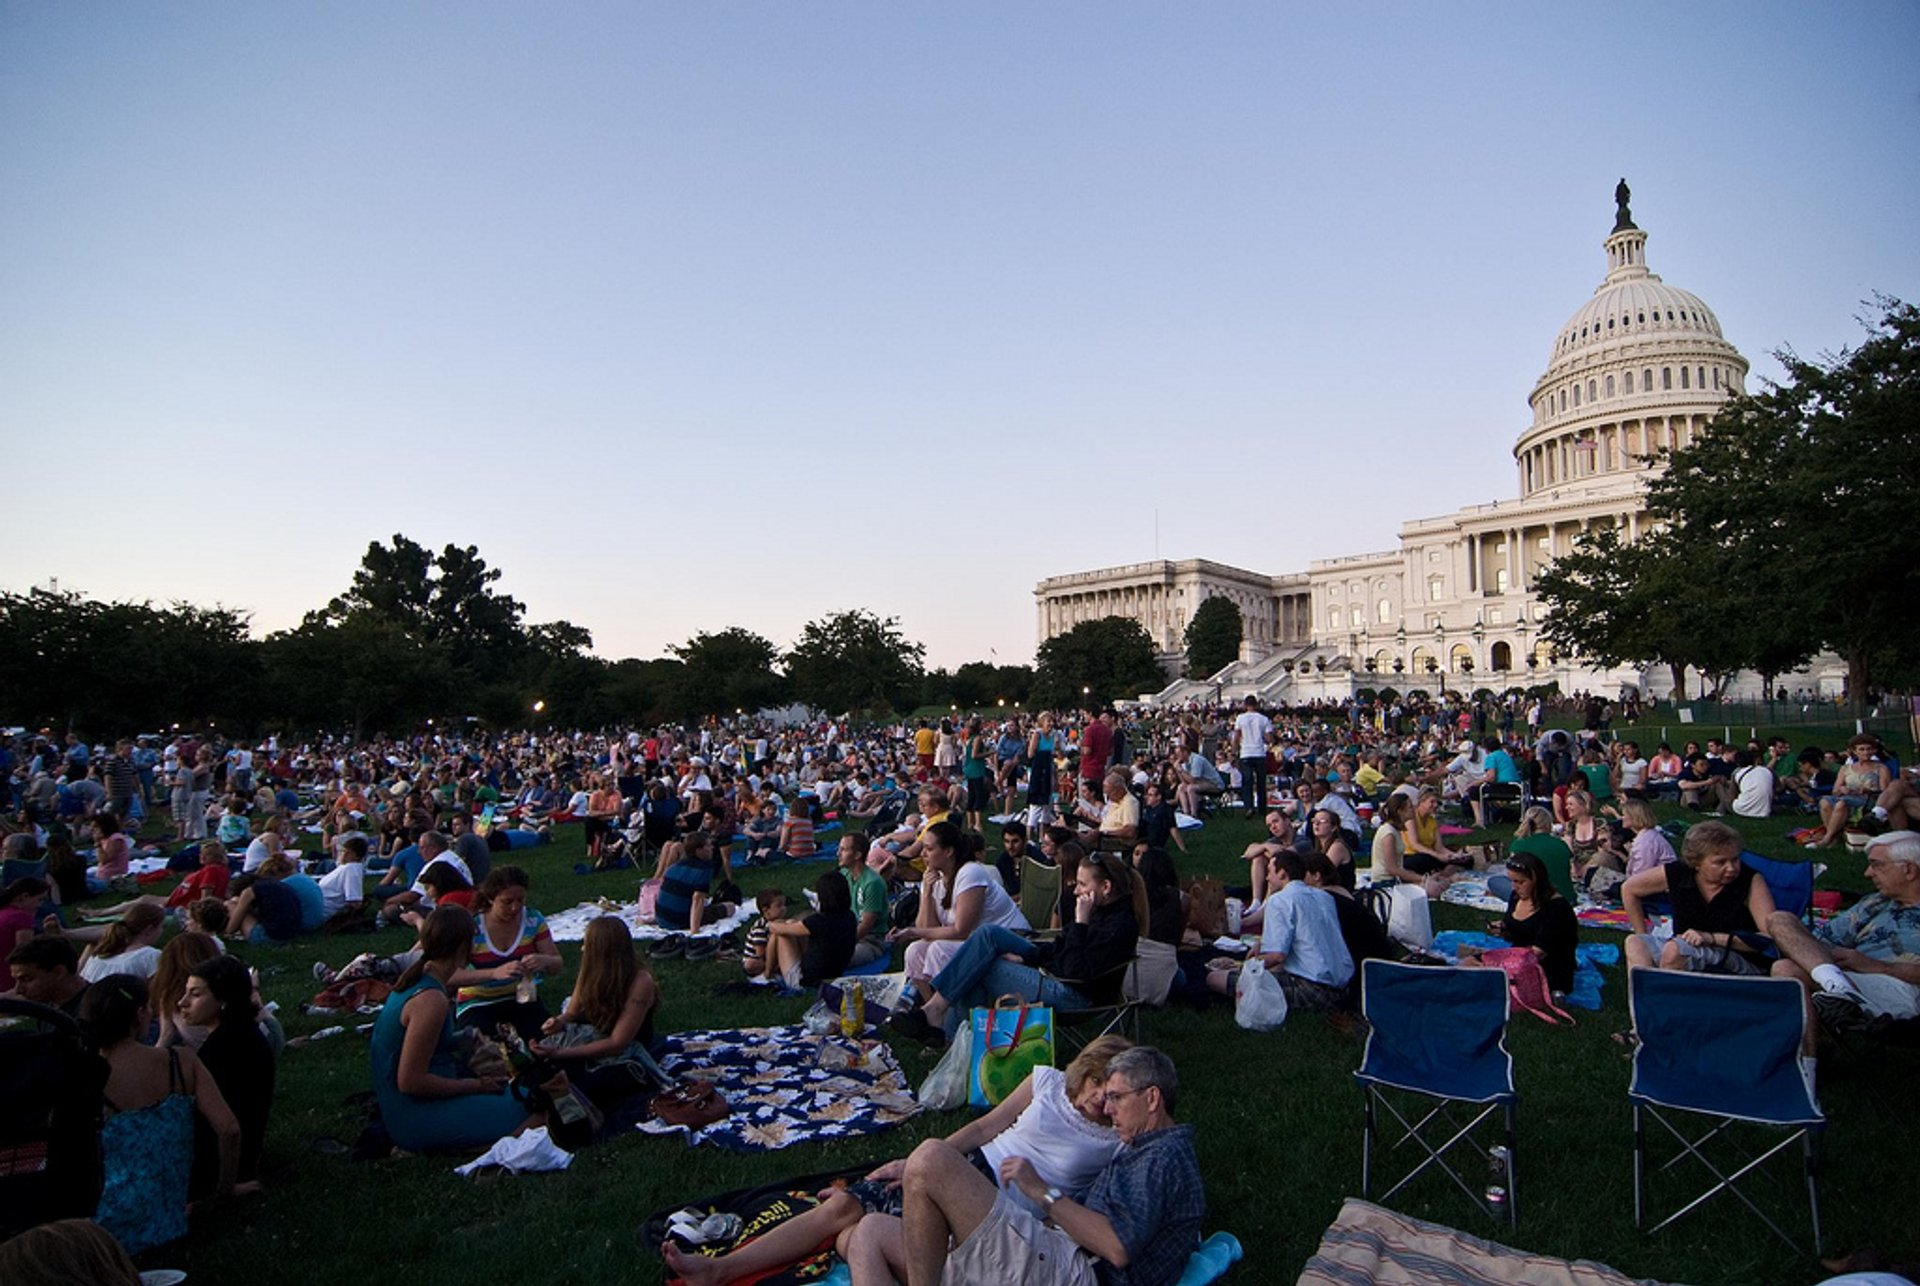 Labor Day Concert in Washington, D.C. - Best Season 2019